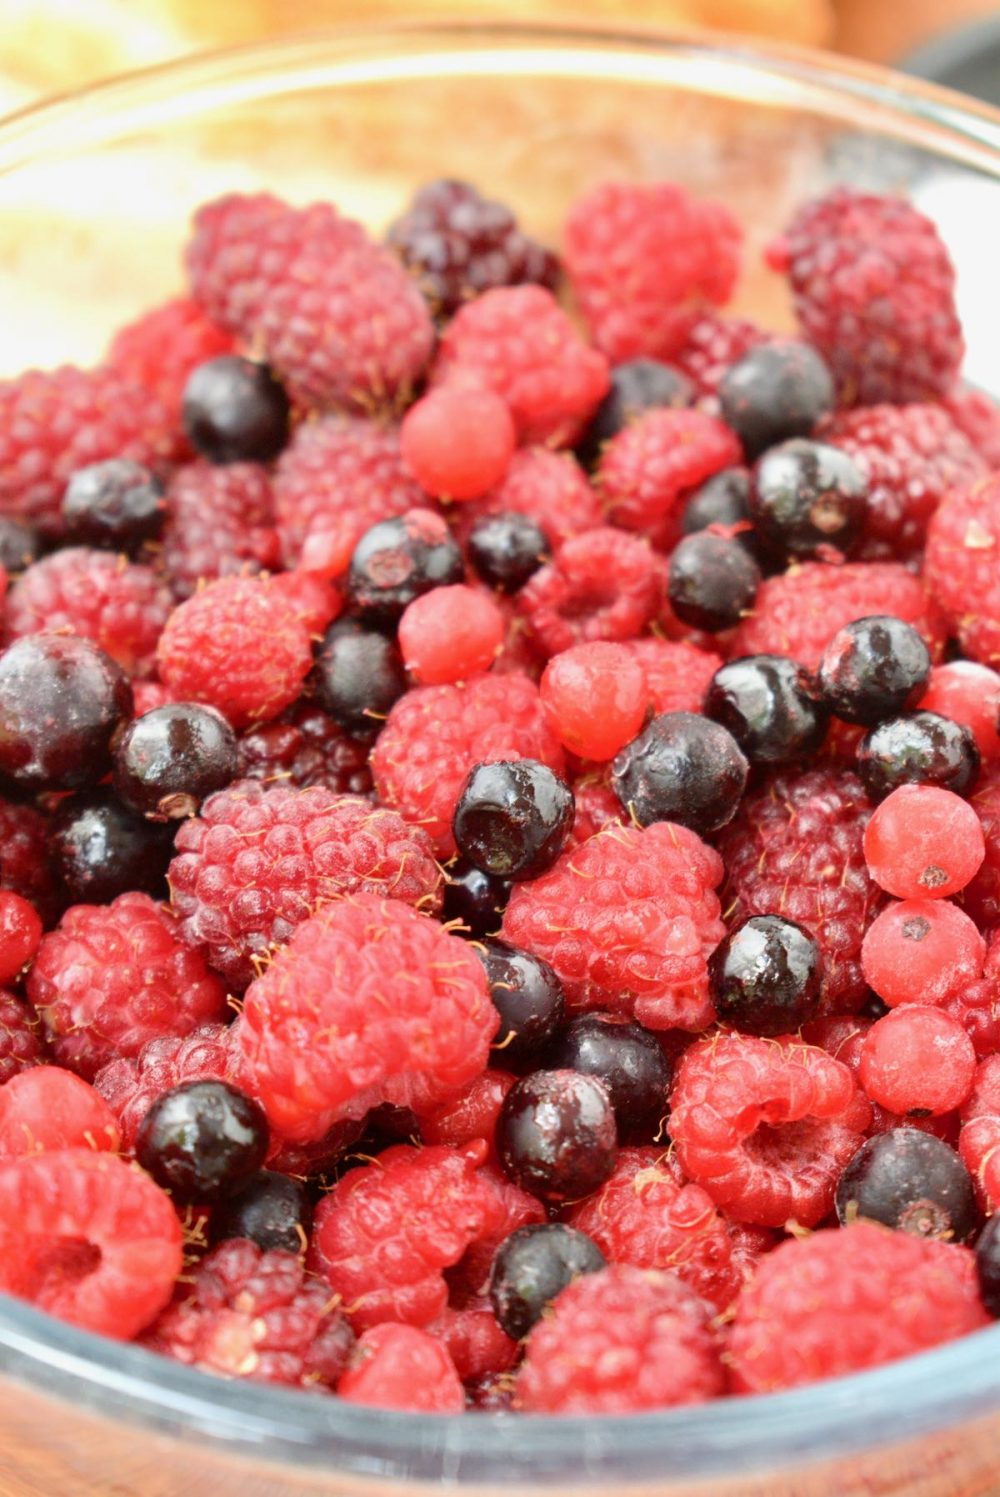 A glass bowl filled to the rim with mixed red berries: raspberries, strawberries, blackberries, blueberries and both red and black currants.